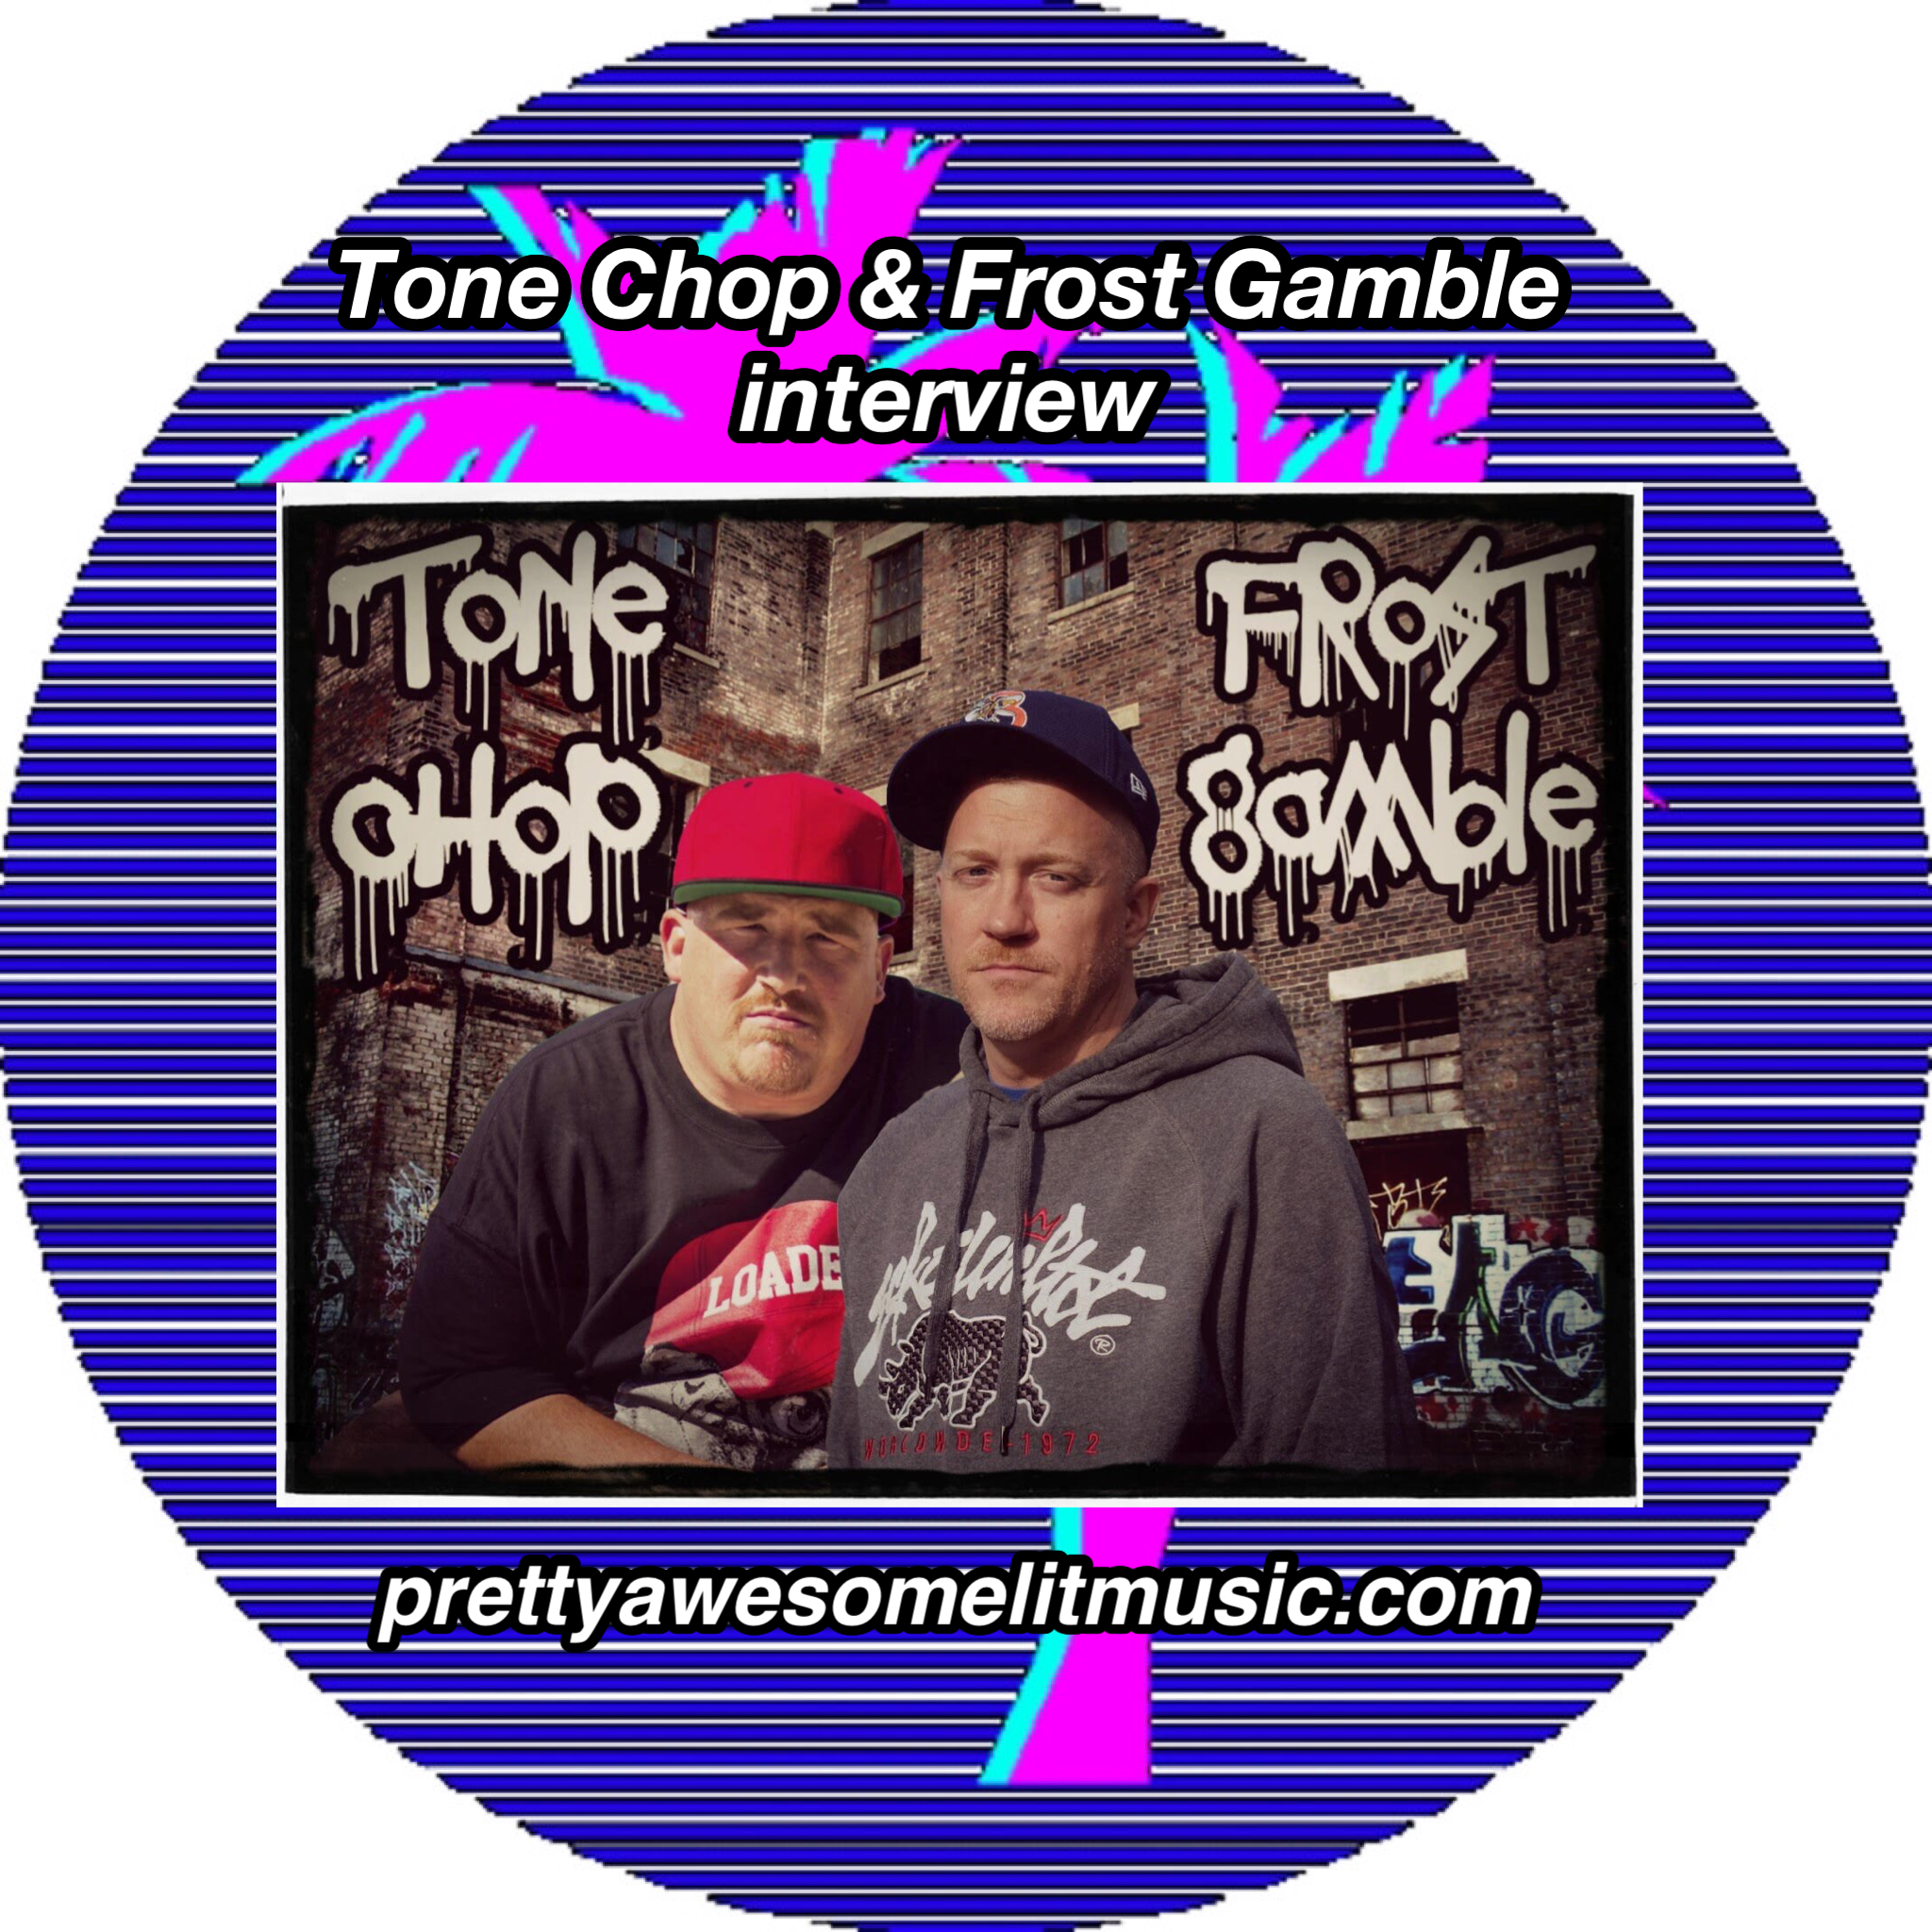 tone-chop-frost-gamble